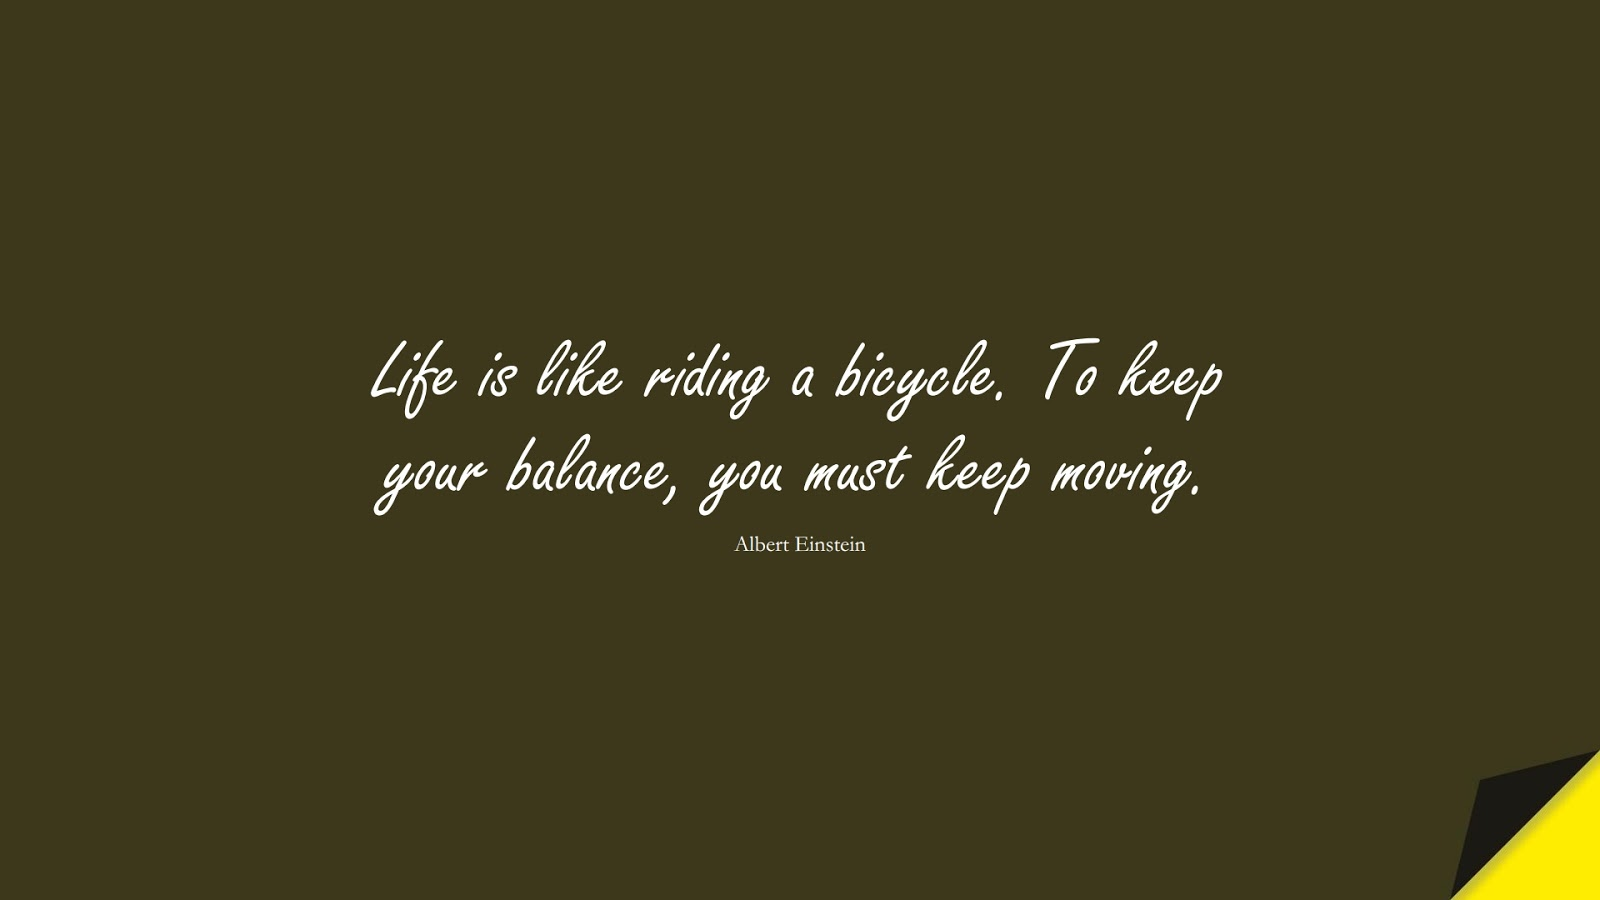 Life is like riding a bicycle. To keep your balance, you must keep moving. (Albert Einstein);  #ShortQuotes